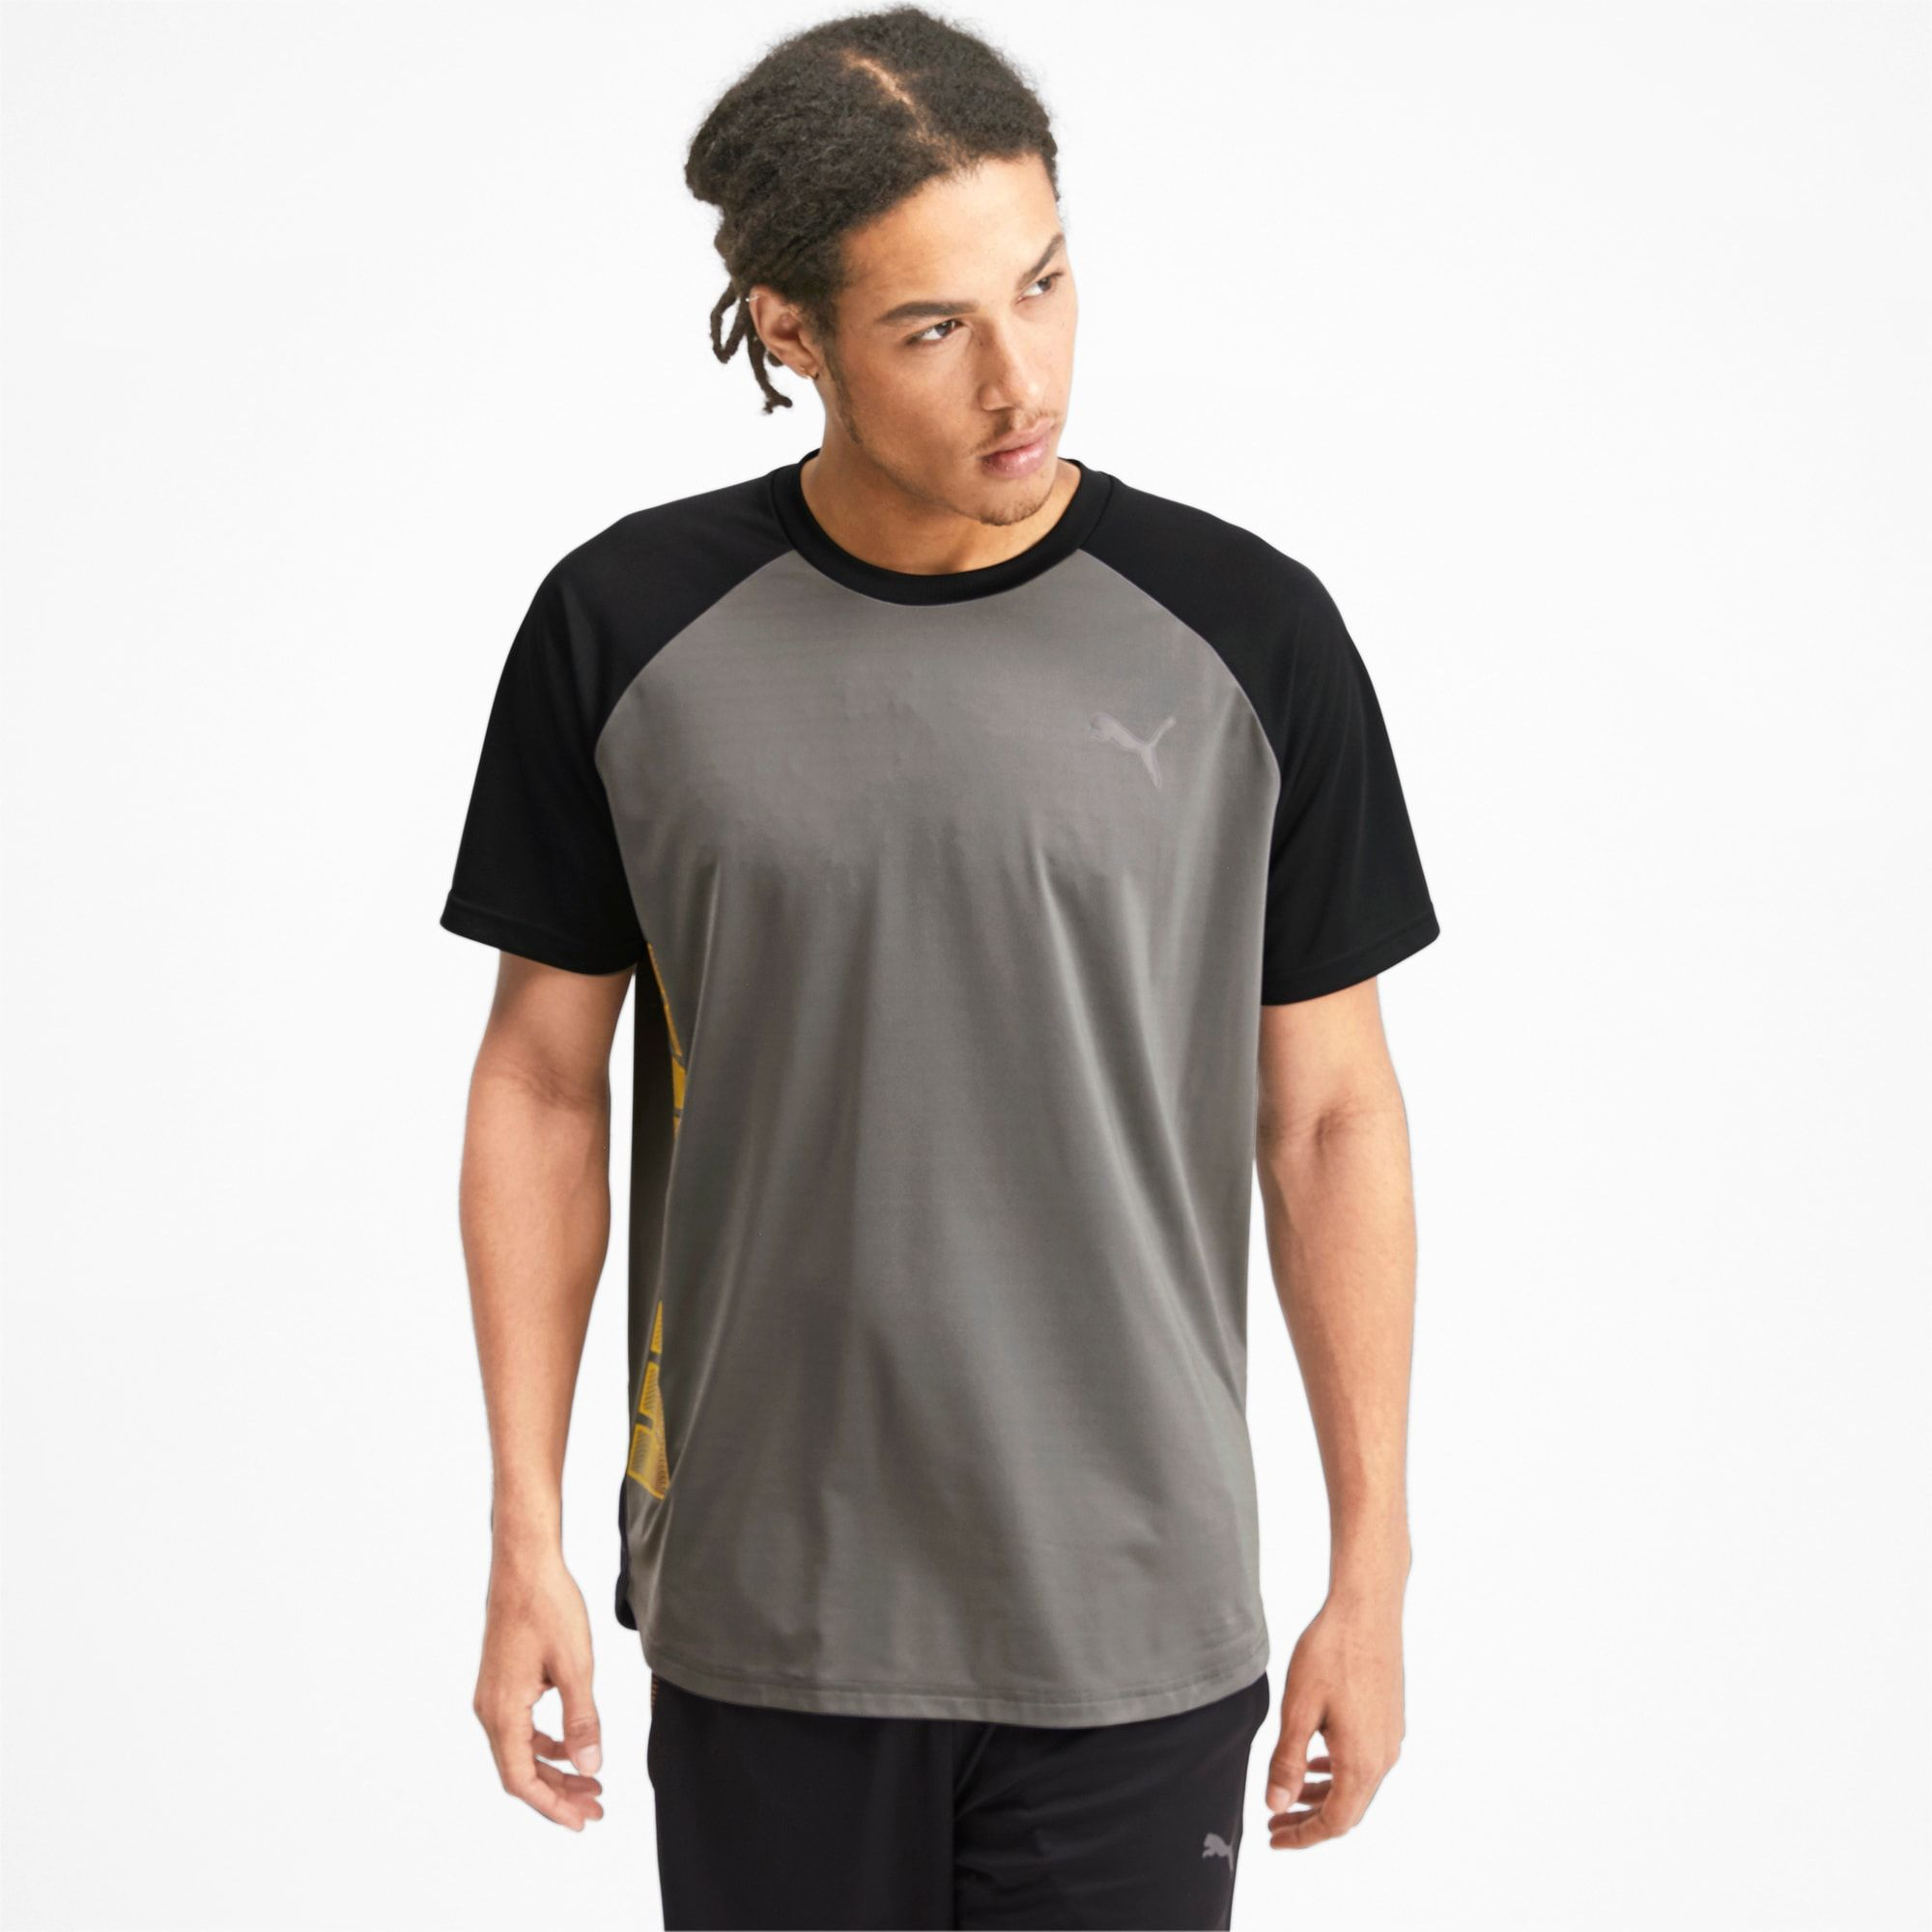 PUMA Collective Loud Men's T-Shirt, Grey, size X Small, Clothing